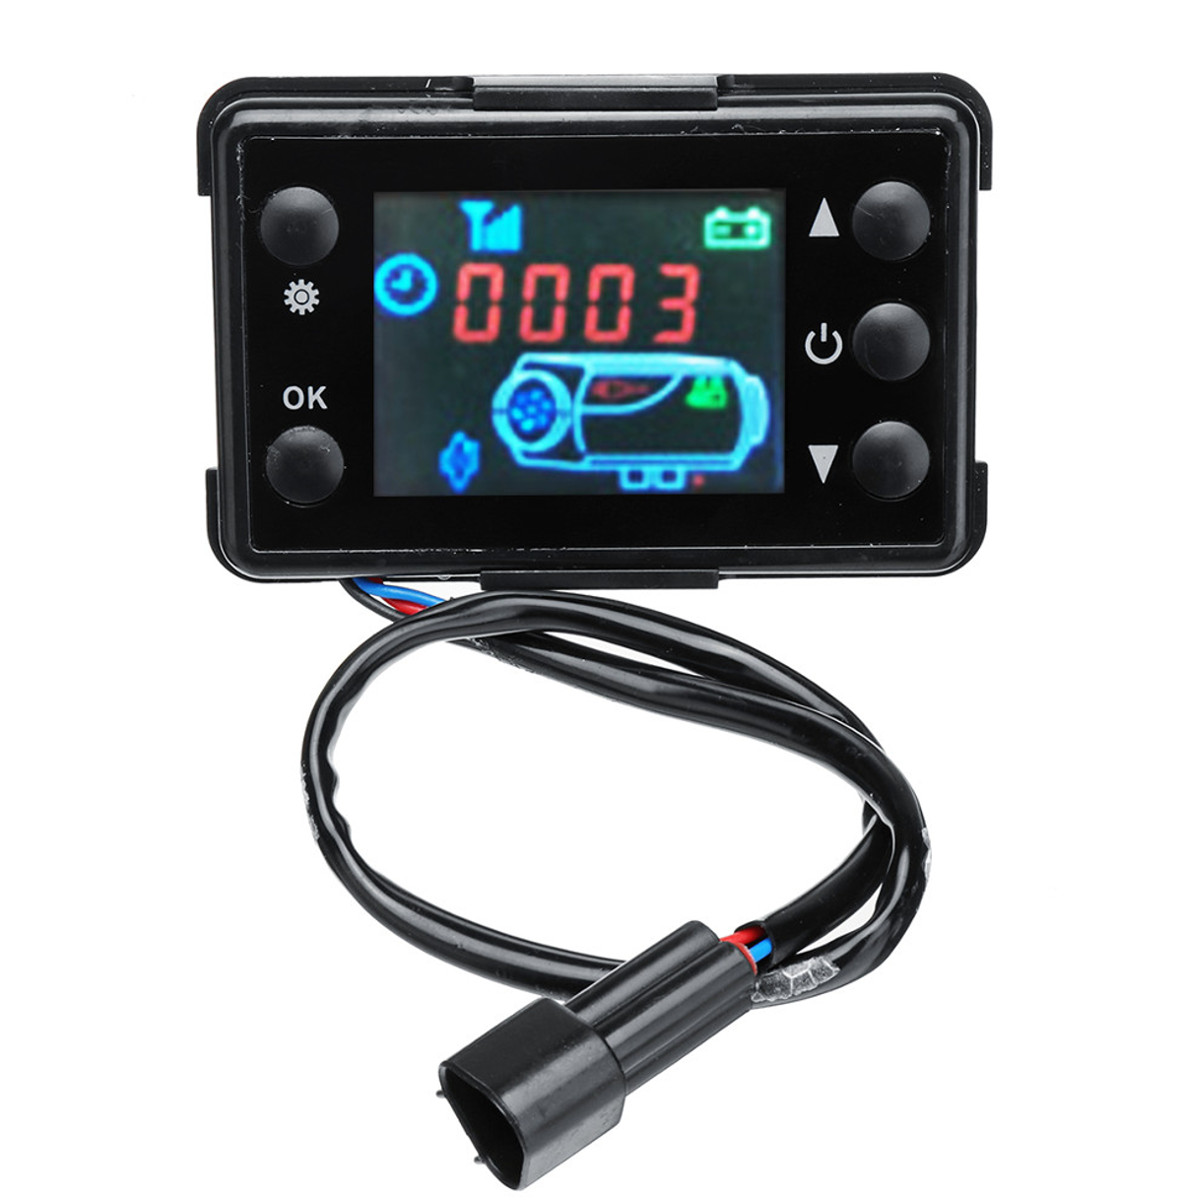 Hospitable 12v/24v 3/5kw Lcd Monitor Parking Heater Switch Car Heating Device Controller Universal For Car Track Air Heater Atv,rv,boat & Other Vehicle